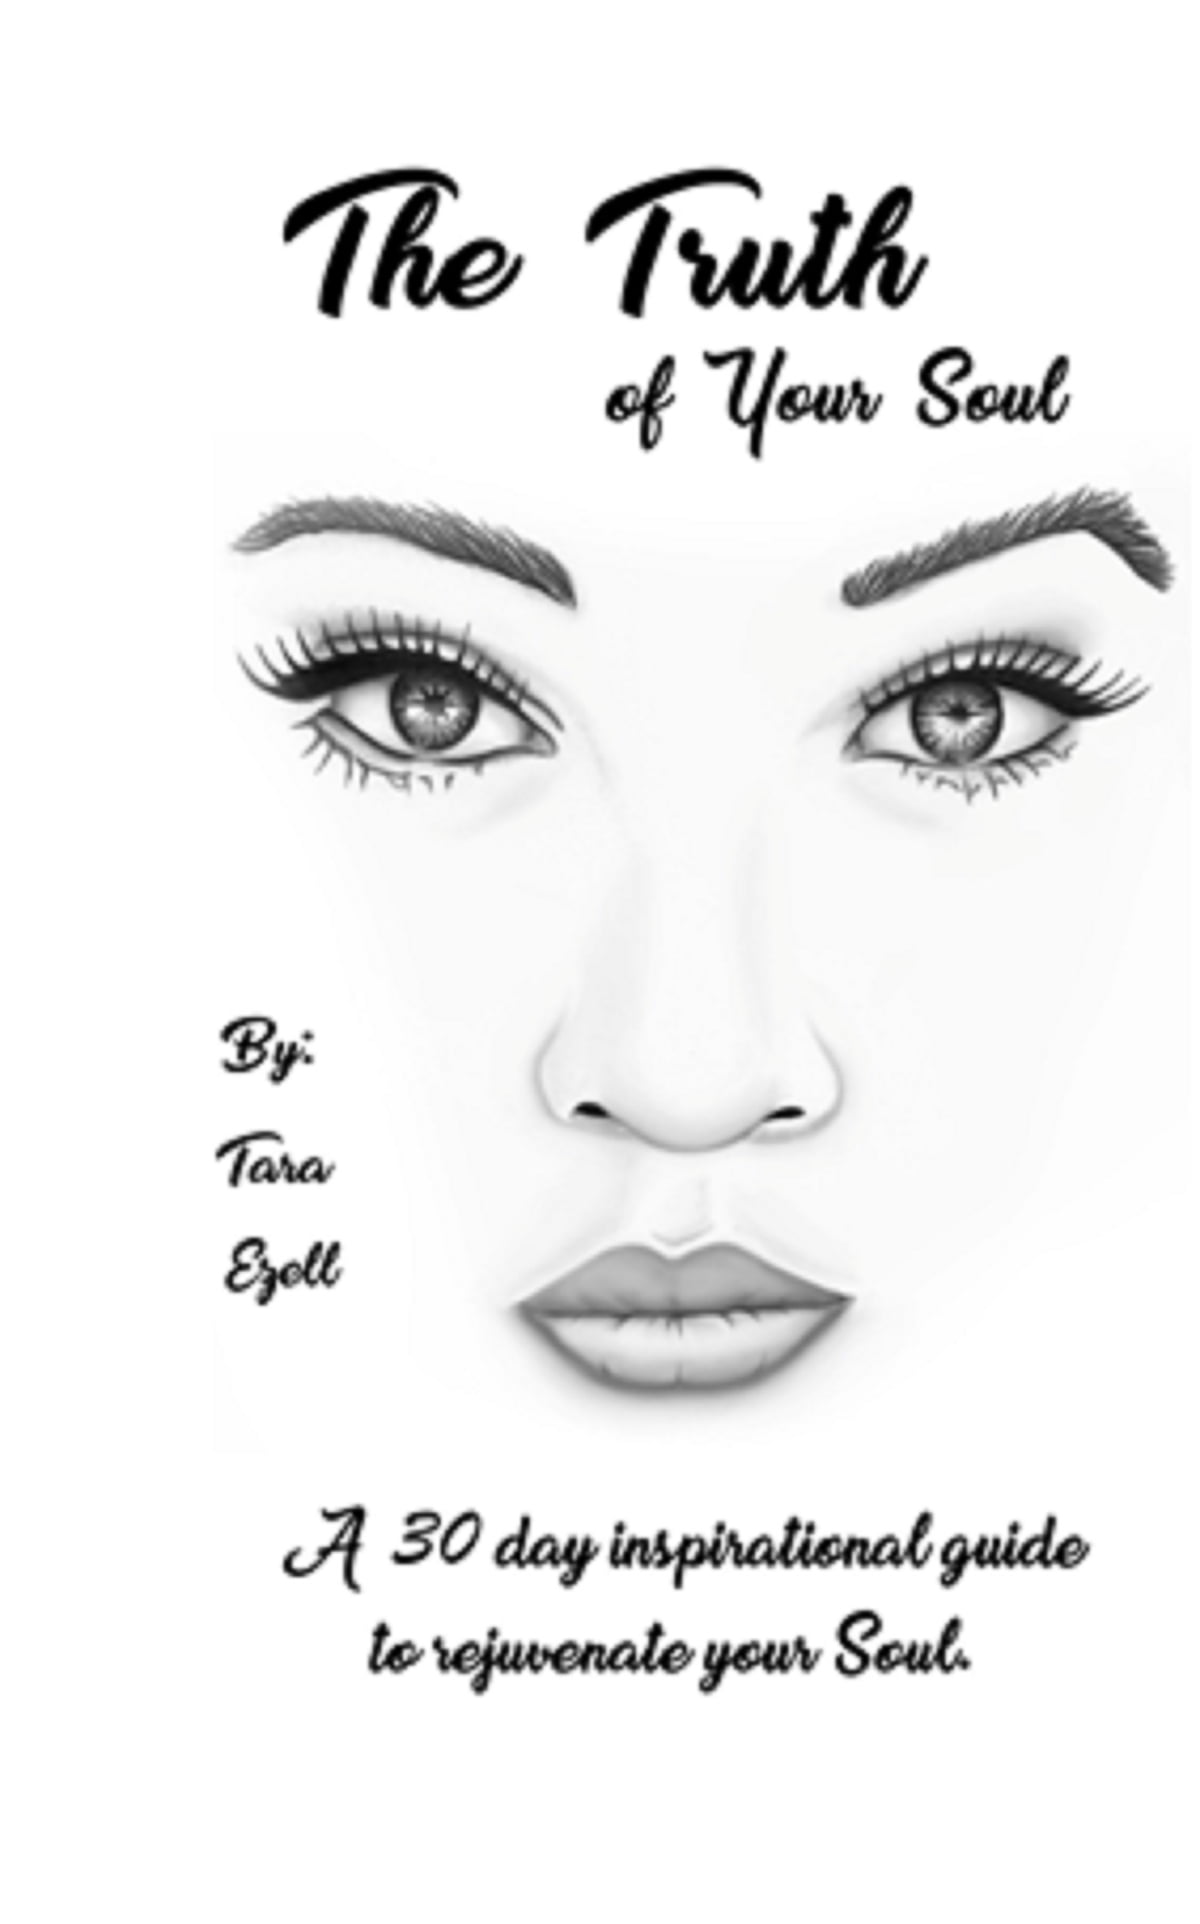 The Truth of Your Soul: A 30 Day Inspirational Guide to